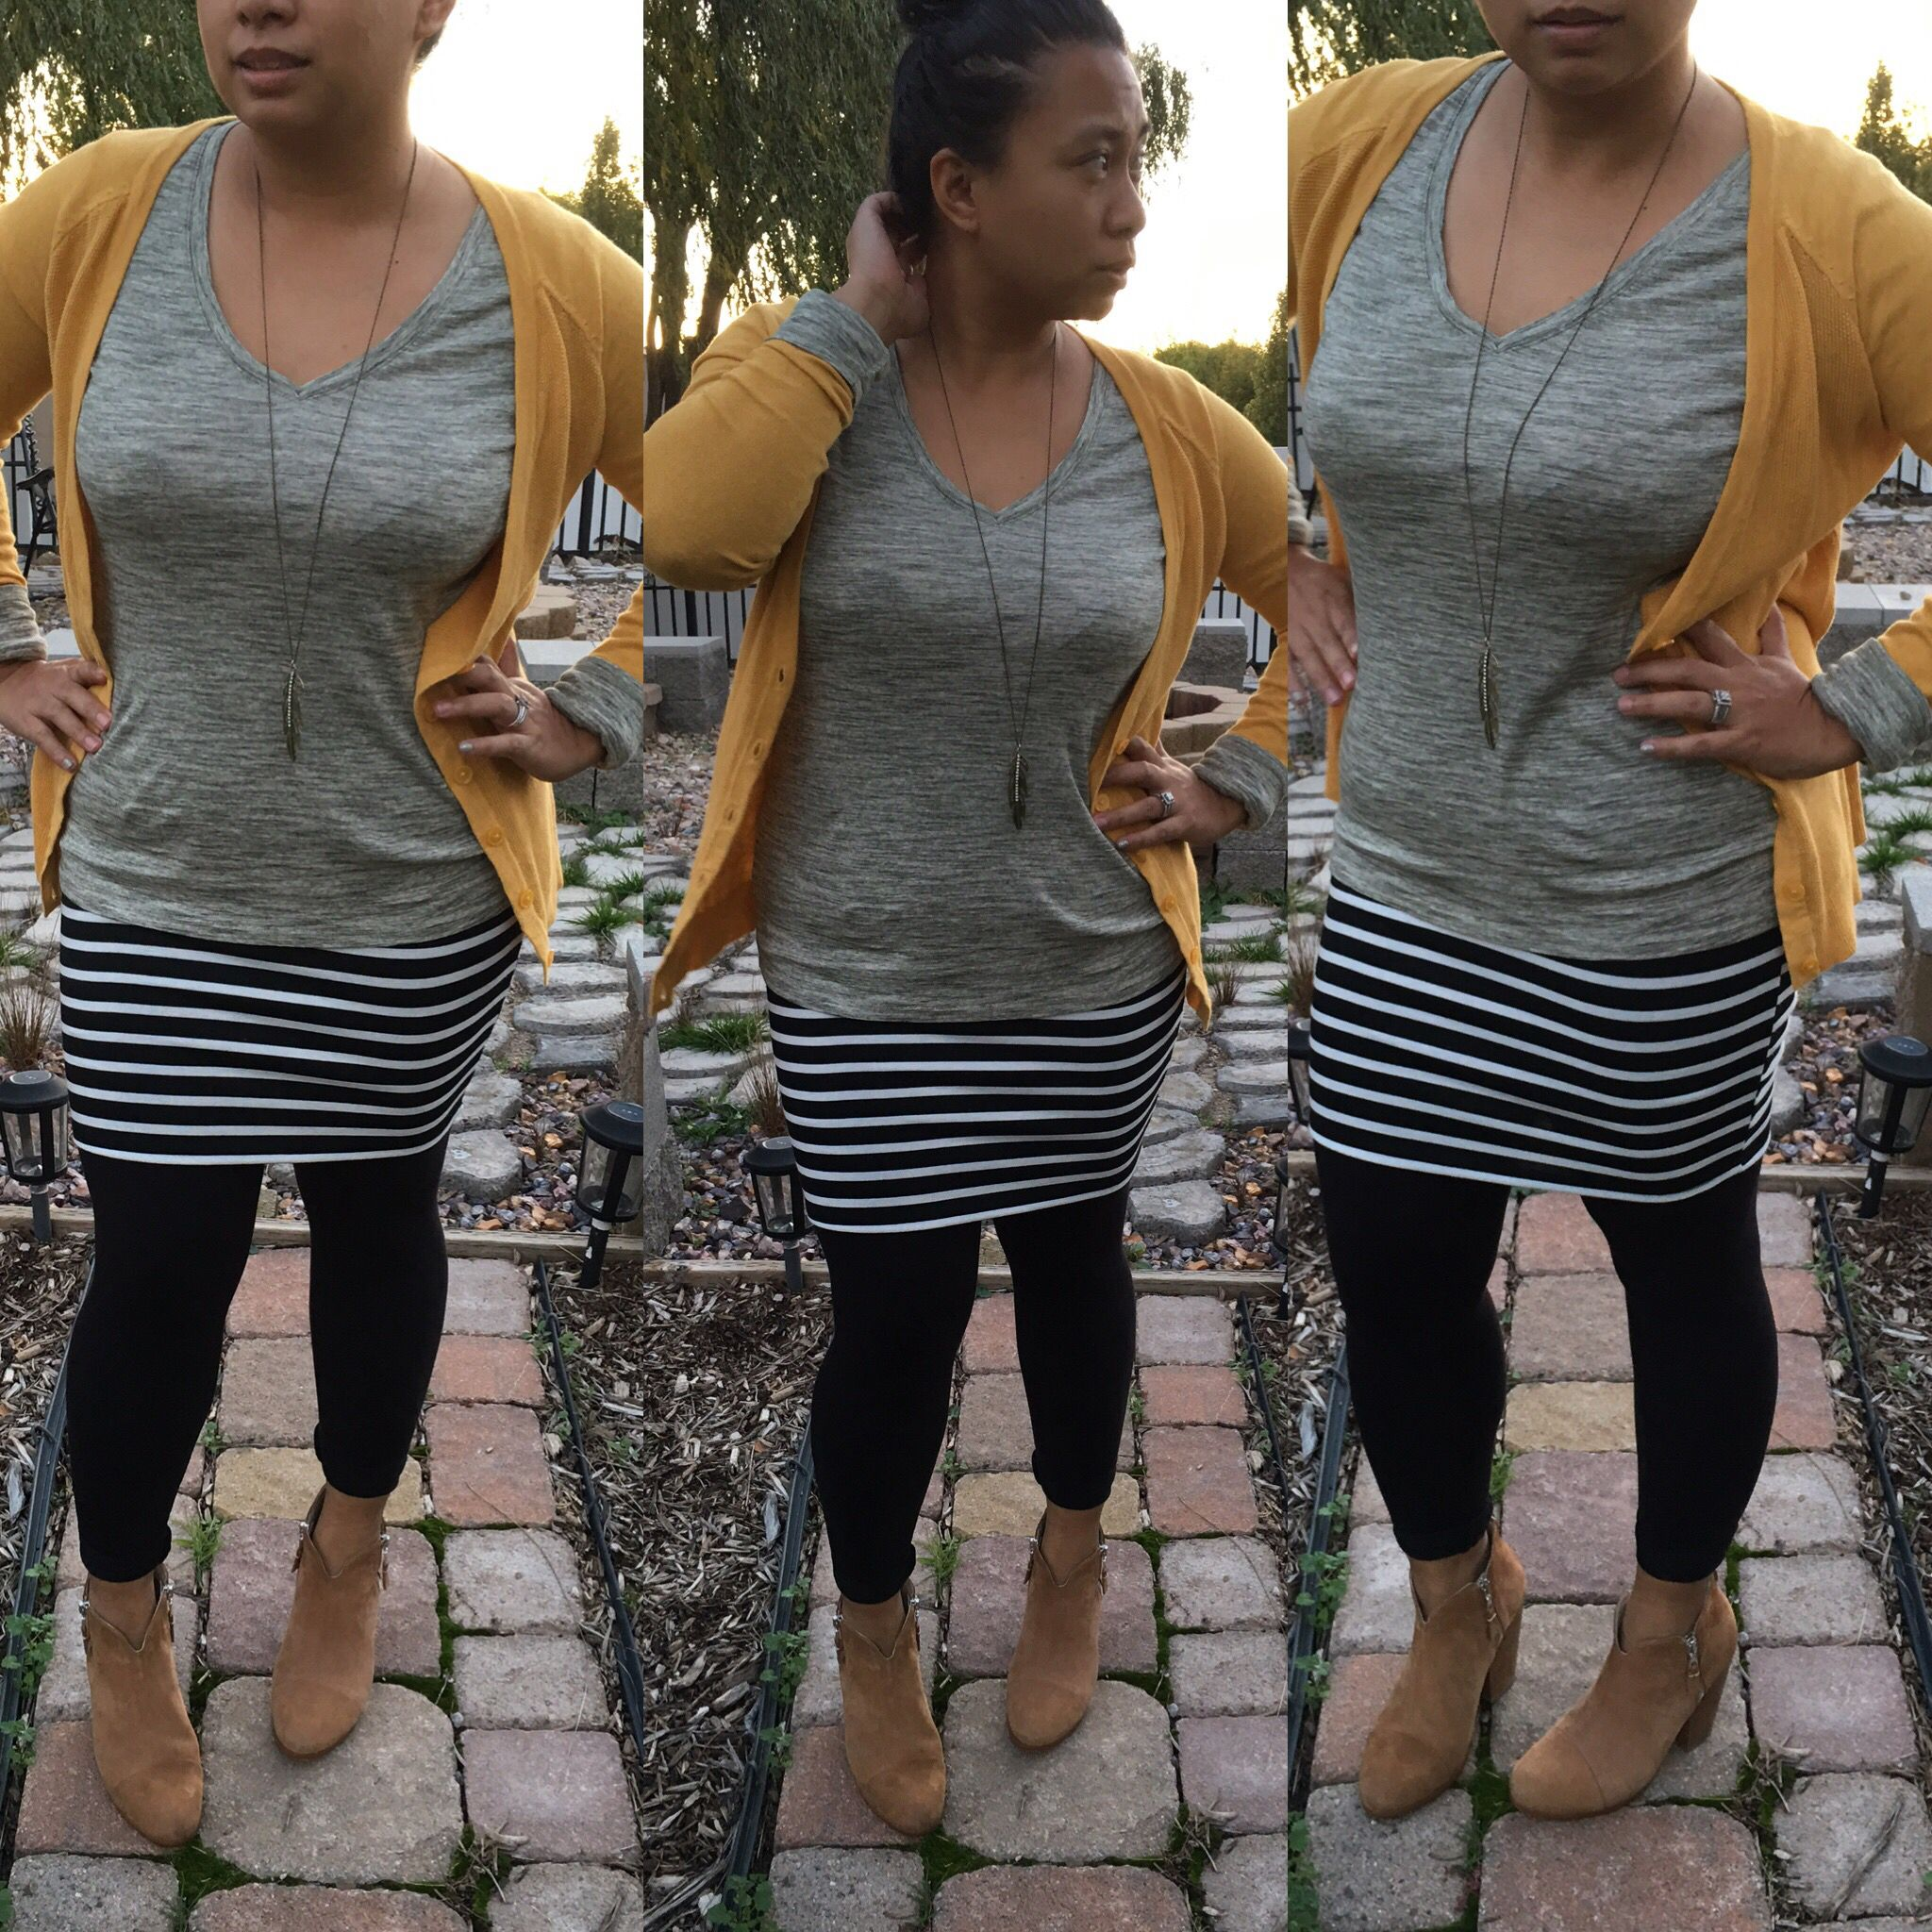 7acc3e451f LuLaroe outfit, LuLaroe style, fall outfits, fall style, how to wear a  skirt with leggings Cardigan: Mossimo Shirt: Mossimo Skirt: LuLaroe Cassie  Leggings: ...